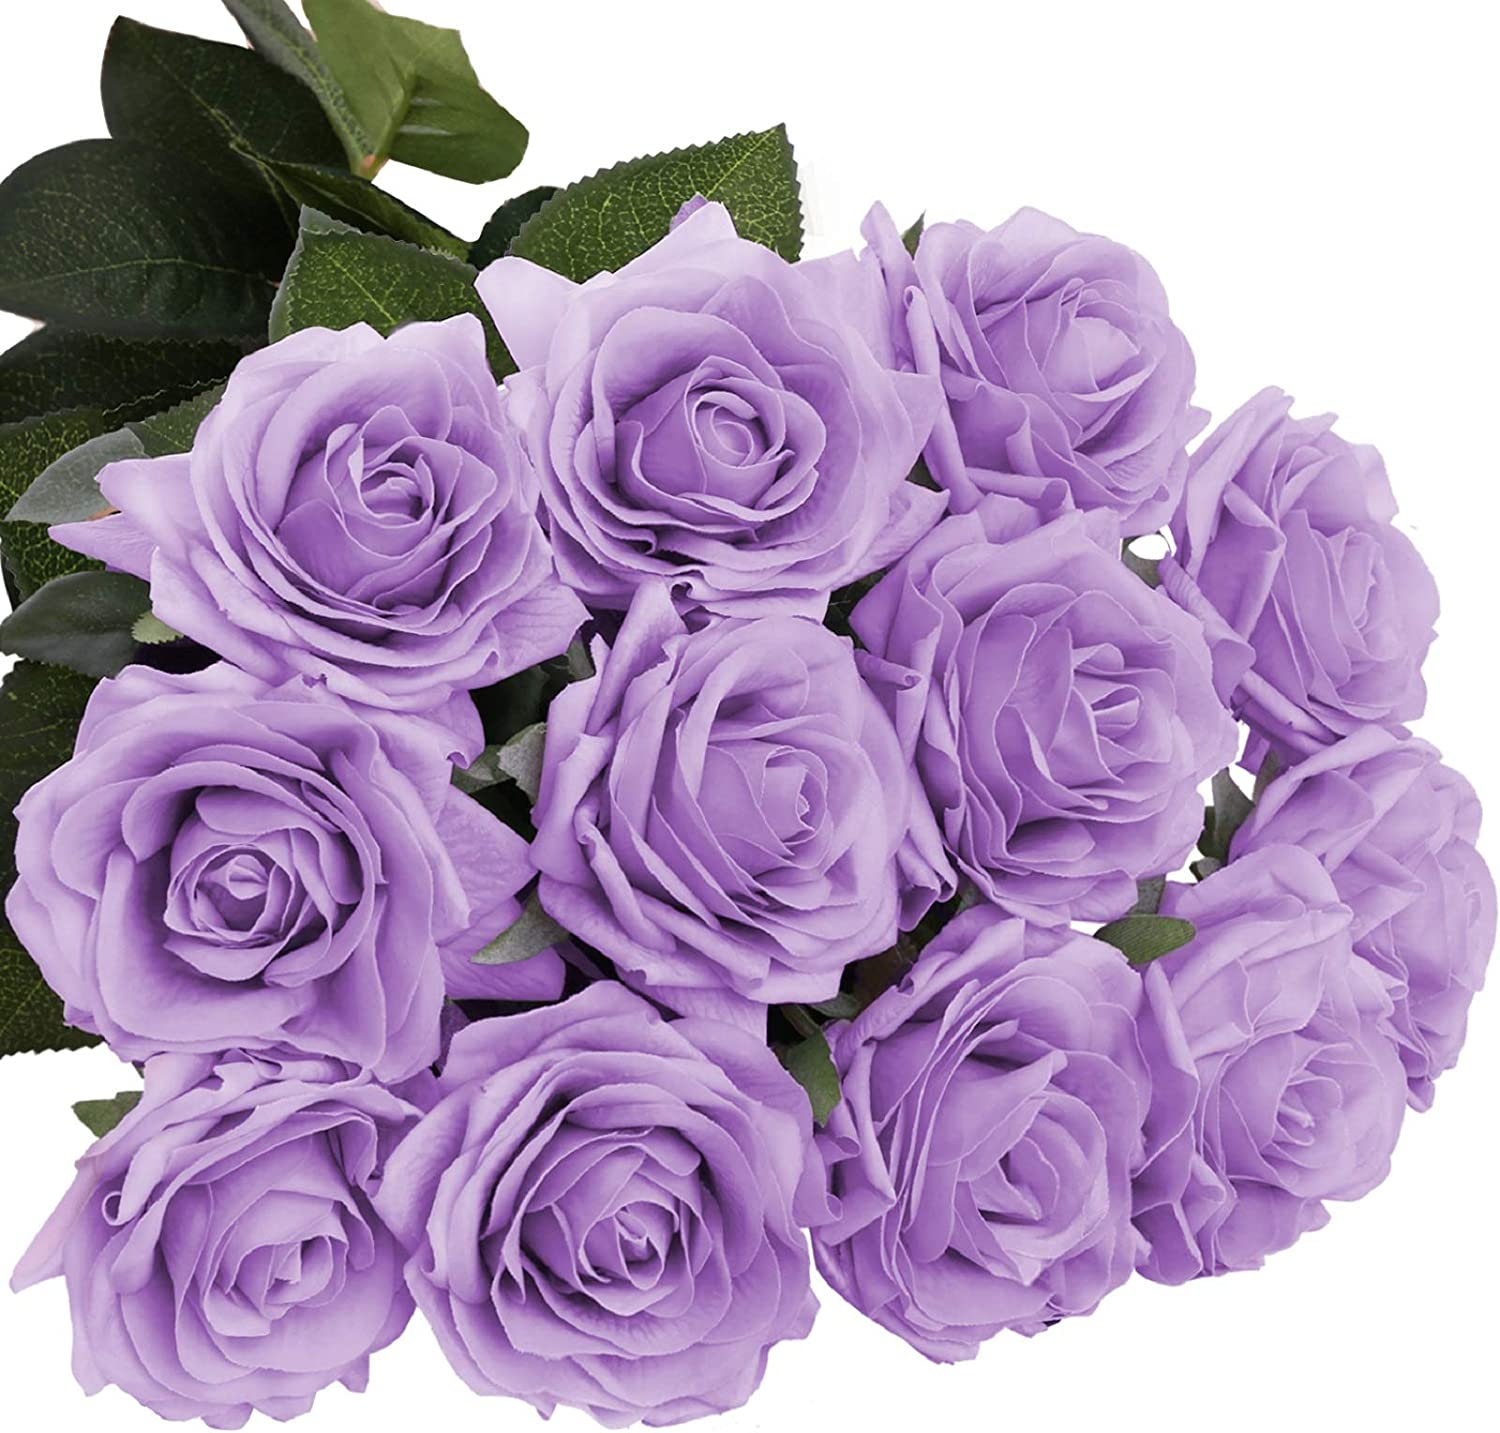 DIGIROOT Artificial Flowers Fake Rose, 12pcs Real Touch Silk Rose Flowers DIY for Wedding, Party and Home Decoration, Purple